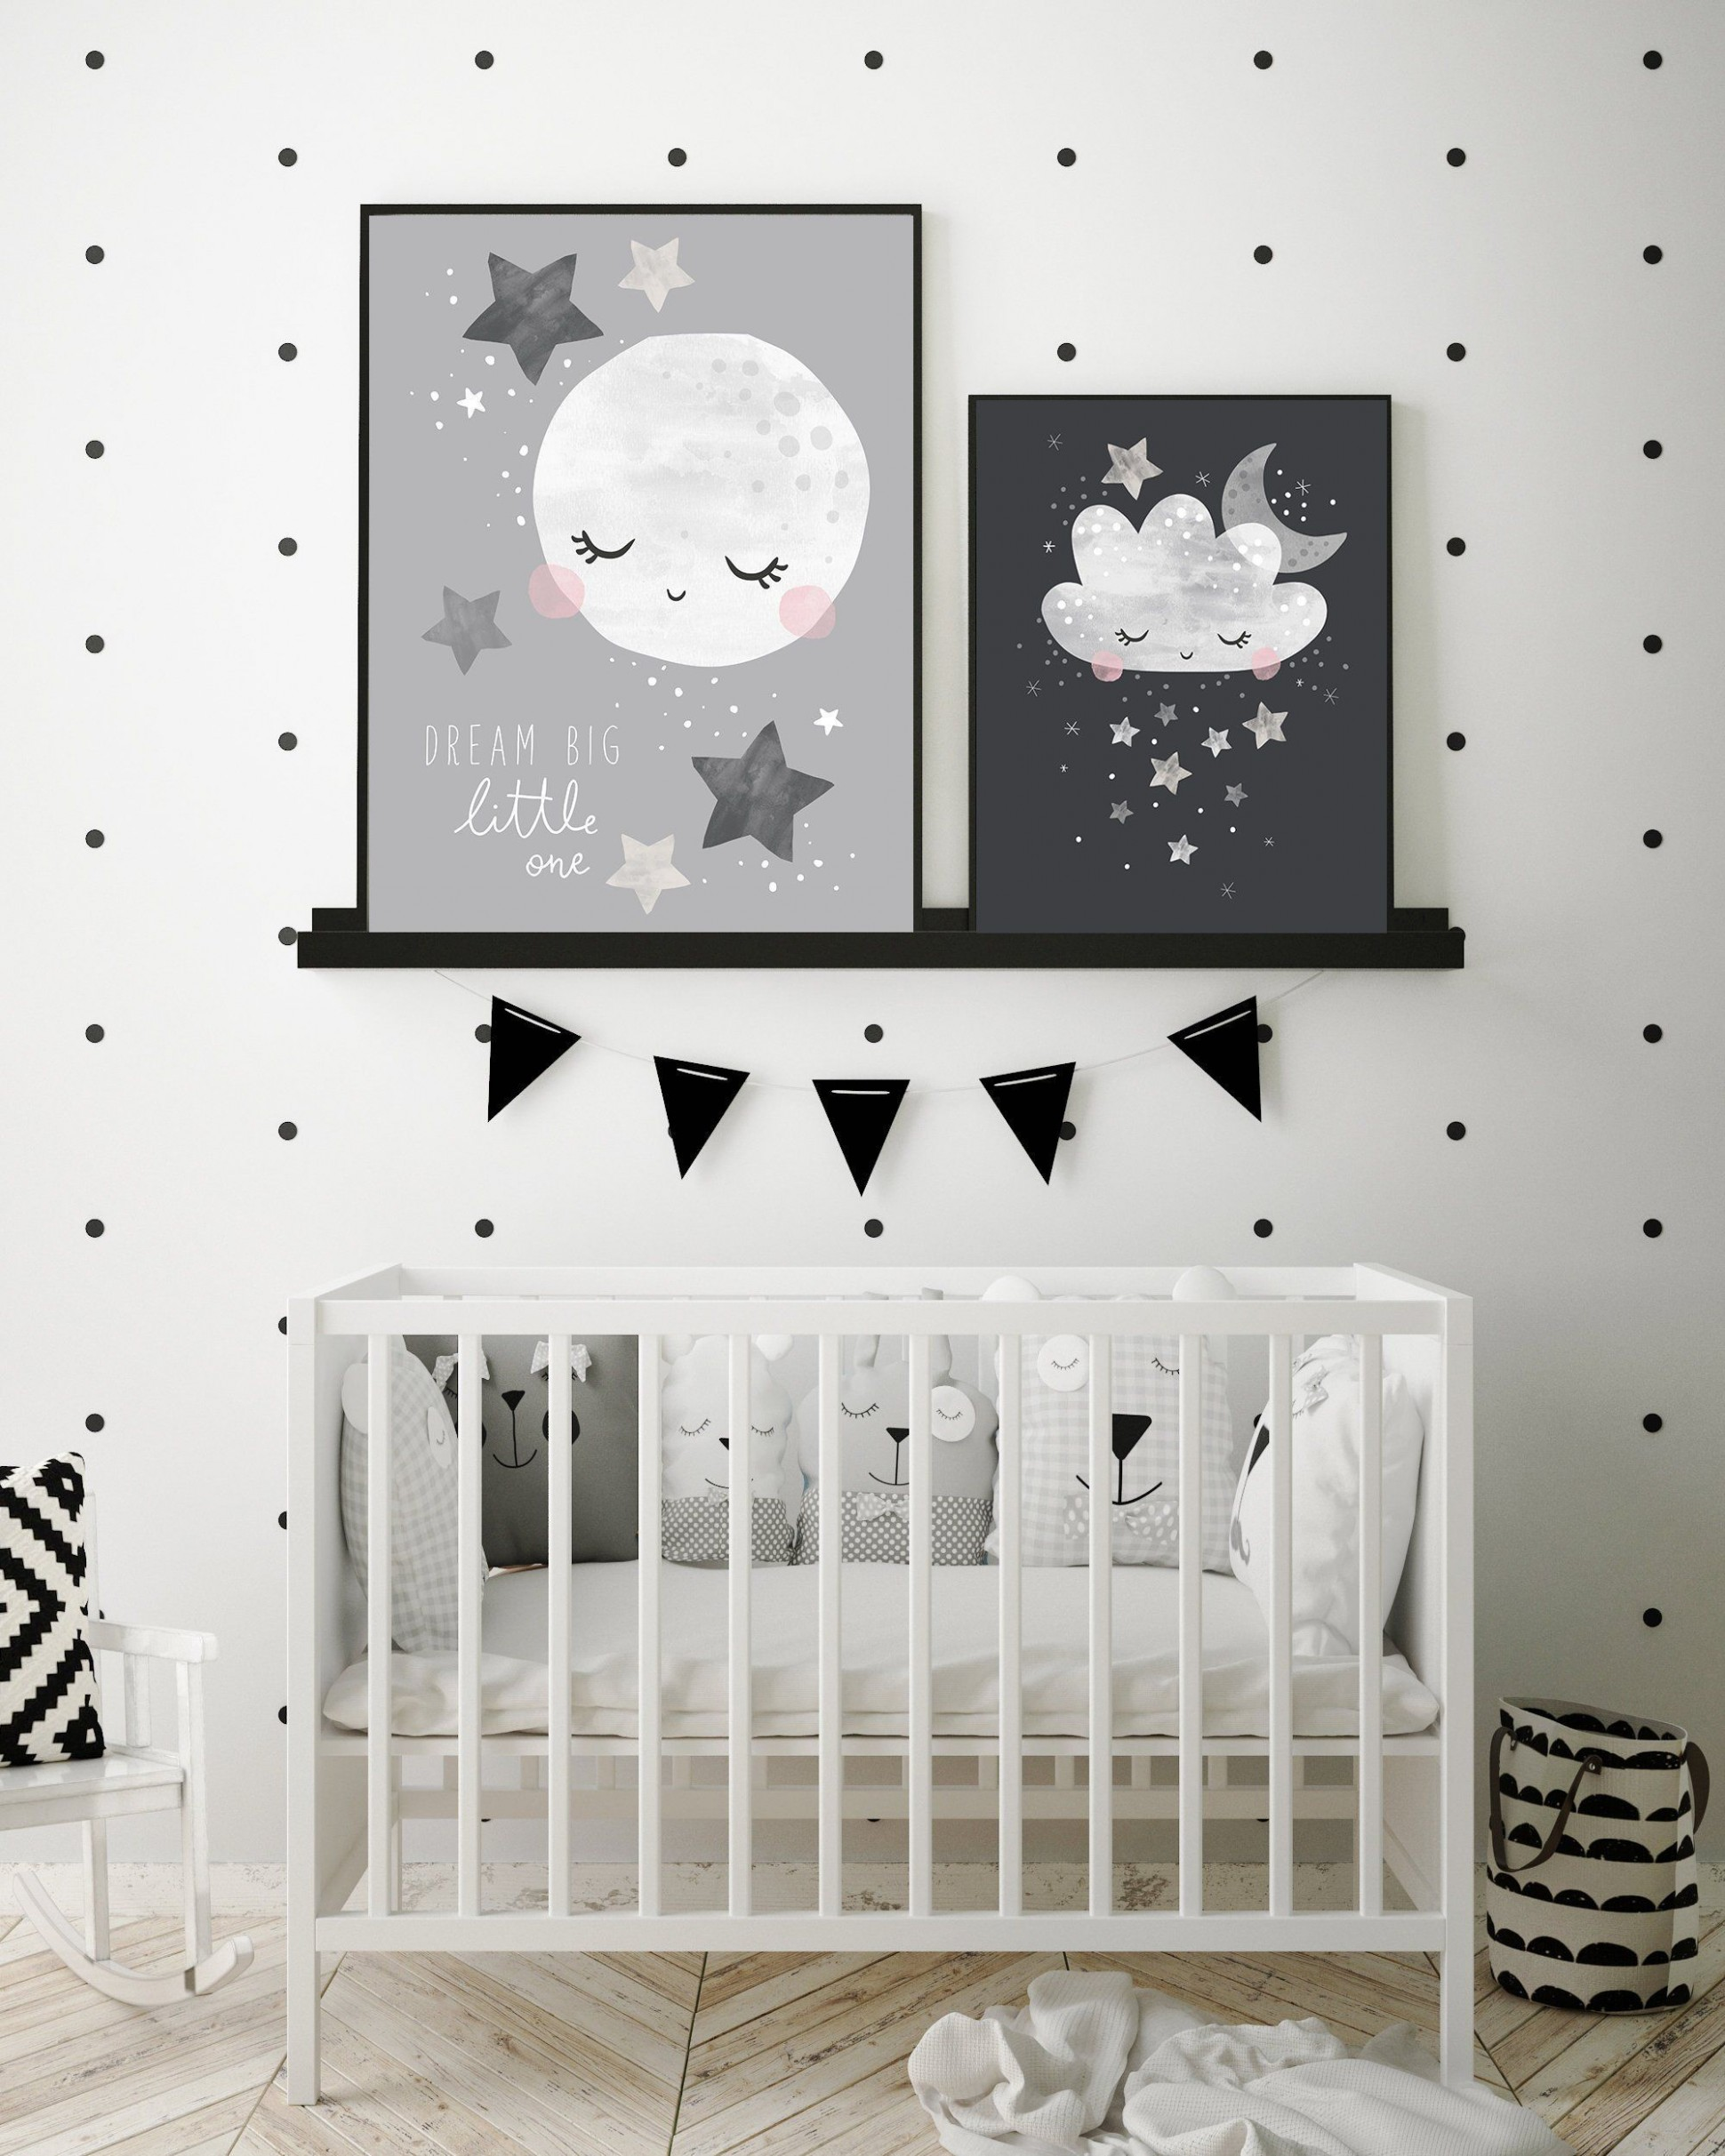 Cloud ideas kid bedroom  Want dreamy inspirations? Go to CIRCU  - Baby Room Wall Art